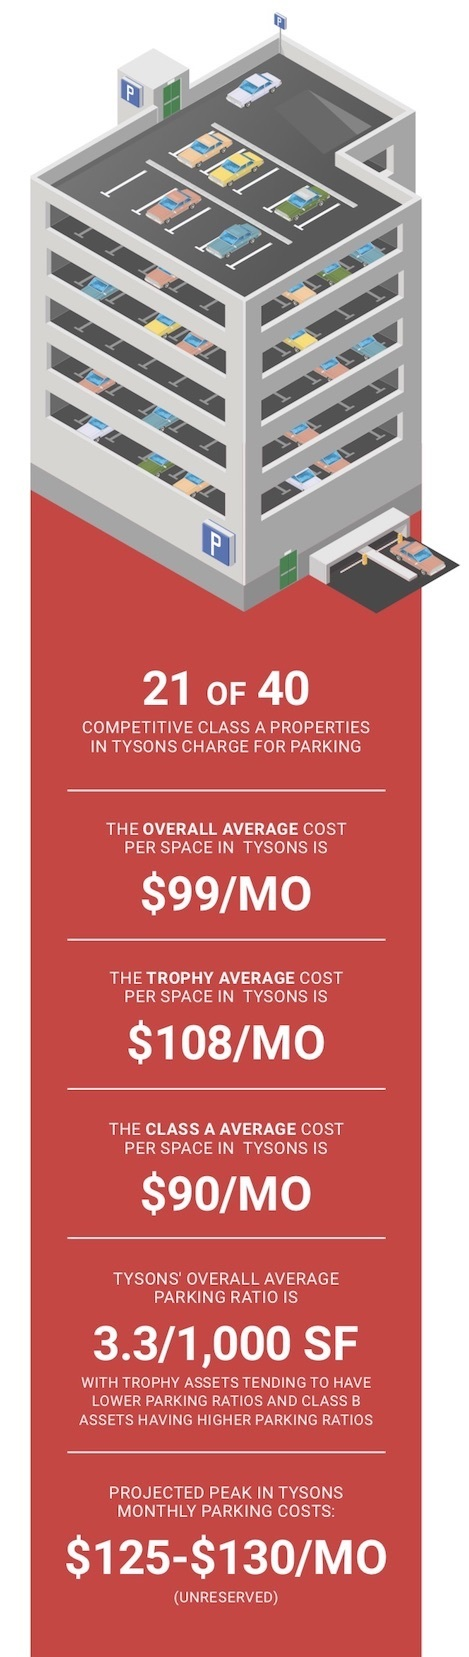 Paid Parking Arrives In Tysons